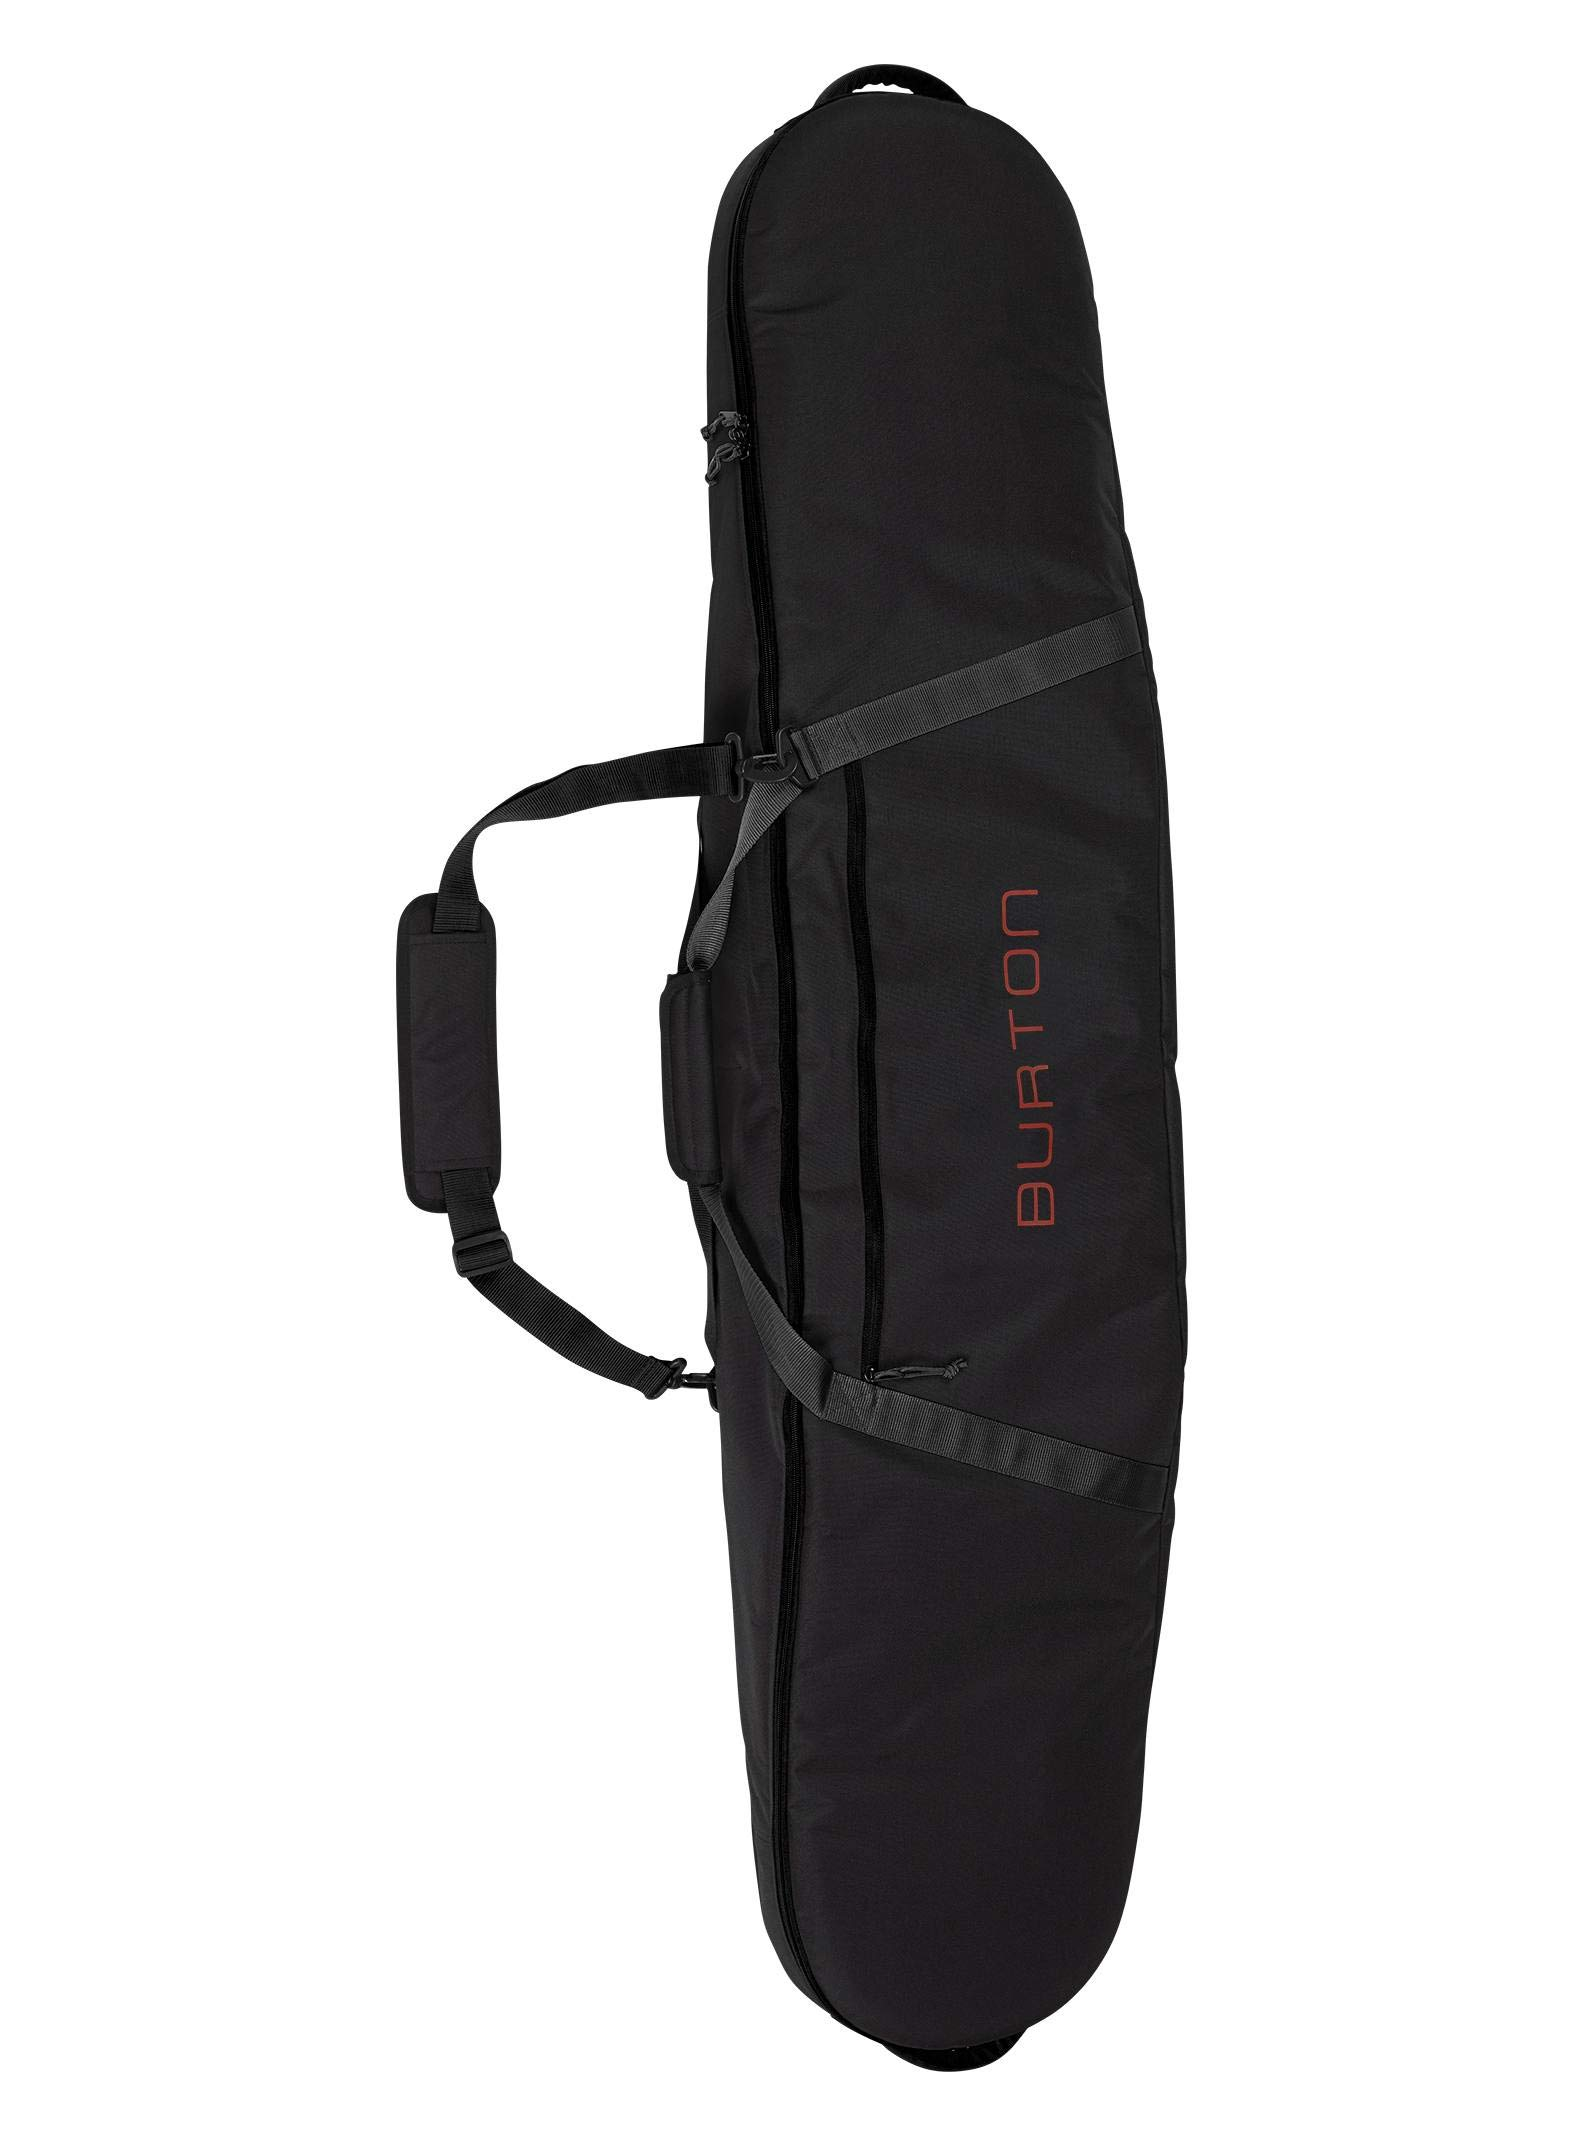 41f4c9a229 Best Rated in Snowboard Bags   Helpful Customer Reviews - Amazon.com